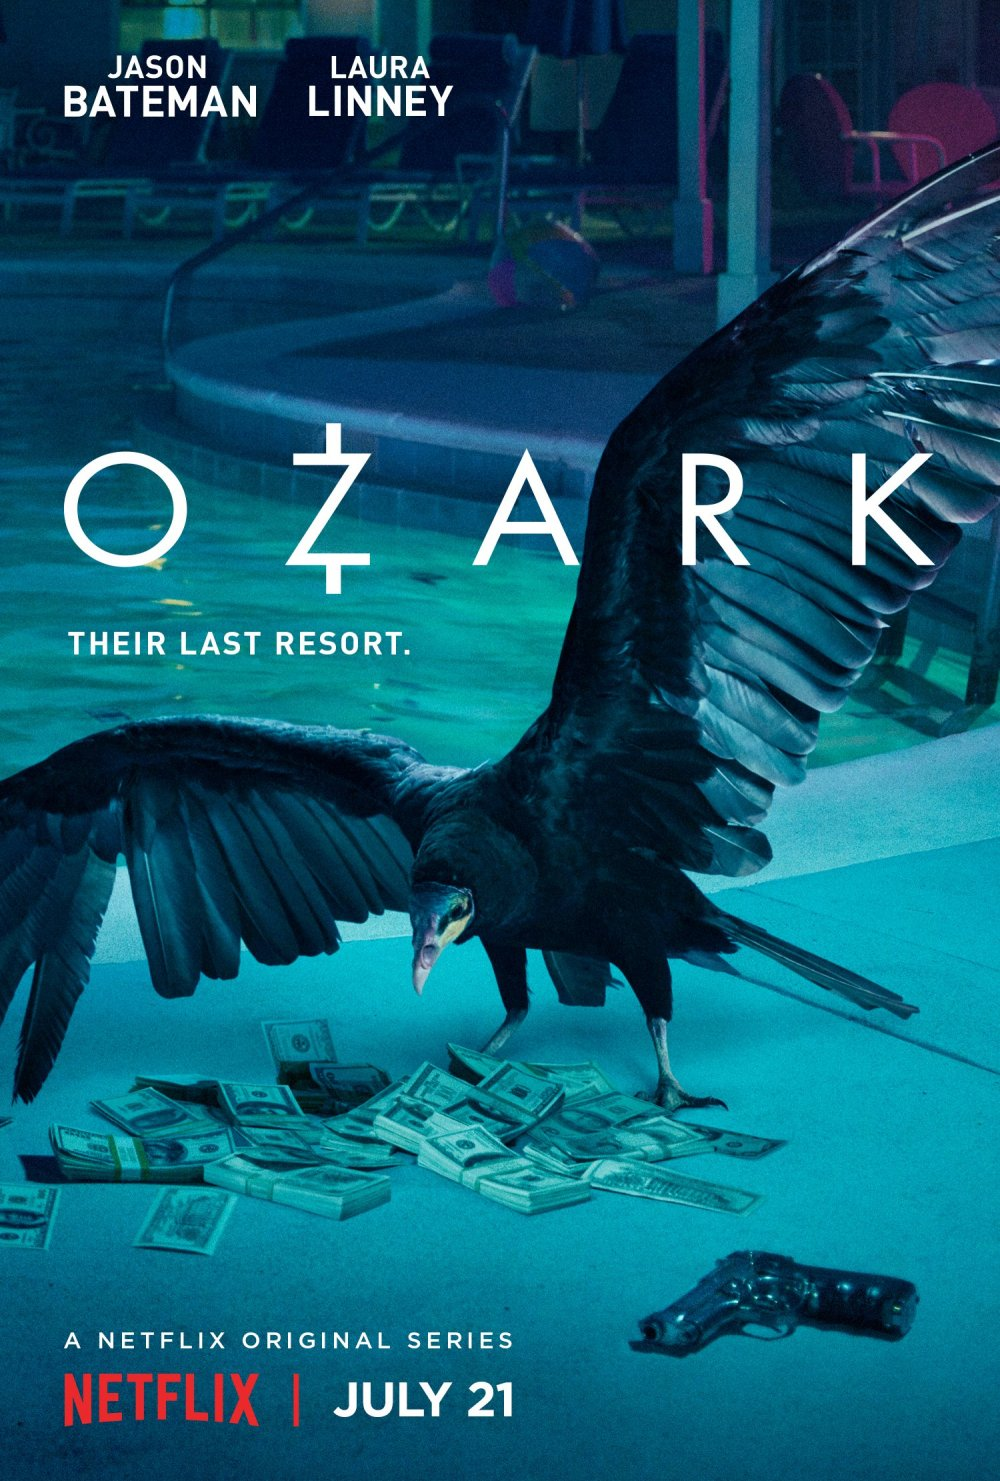 ozark-new-netflix-original-series-new-poster